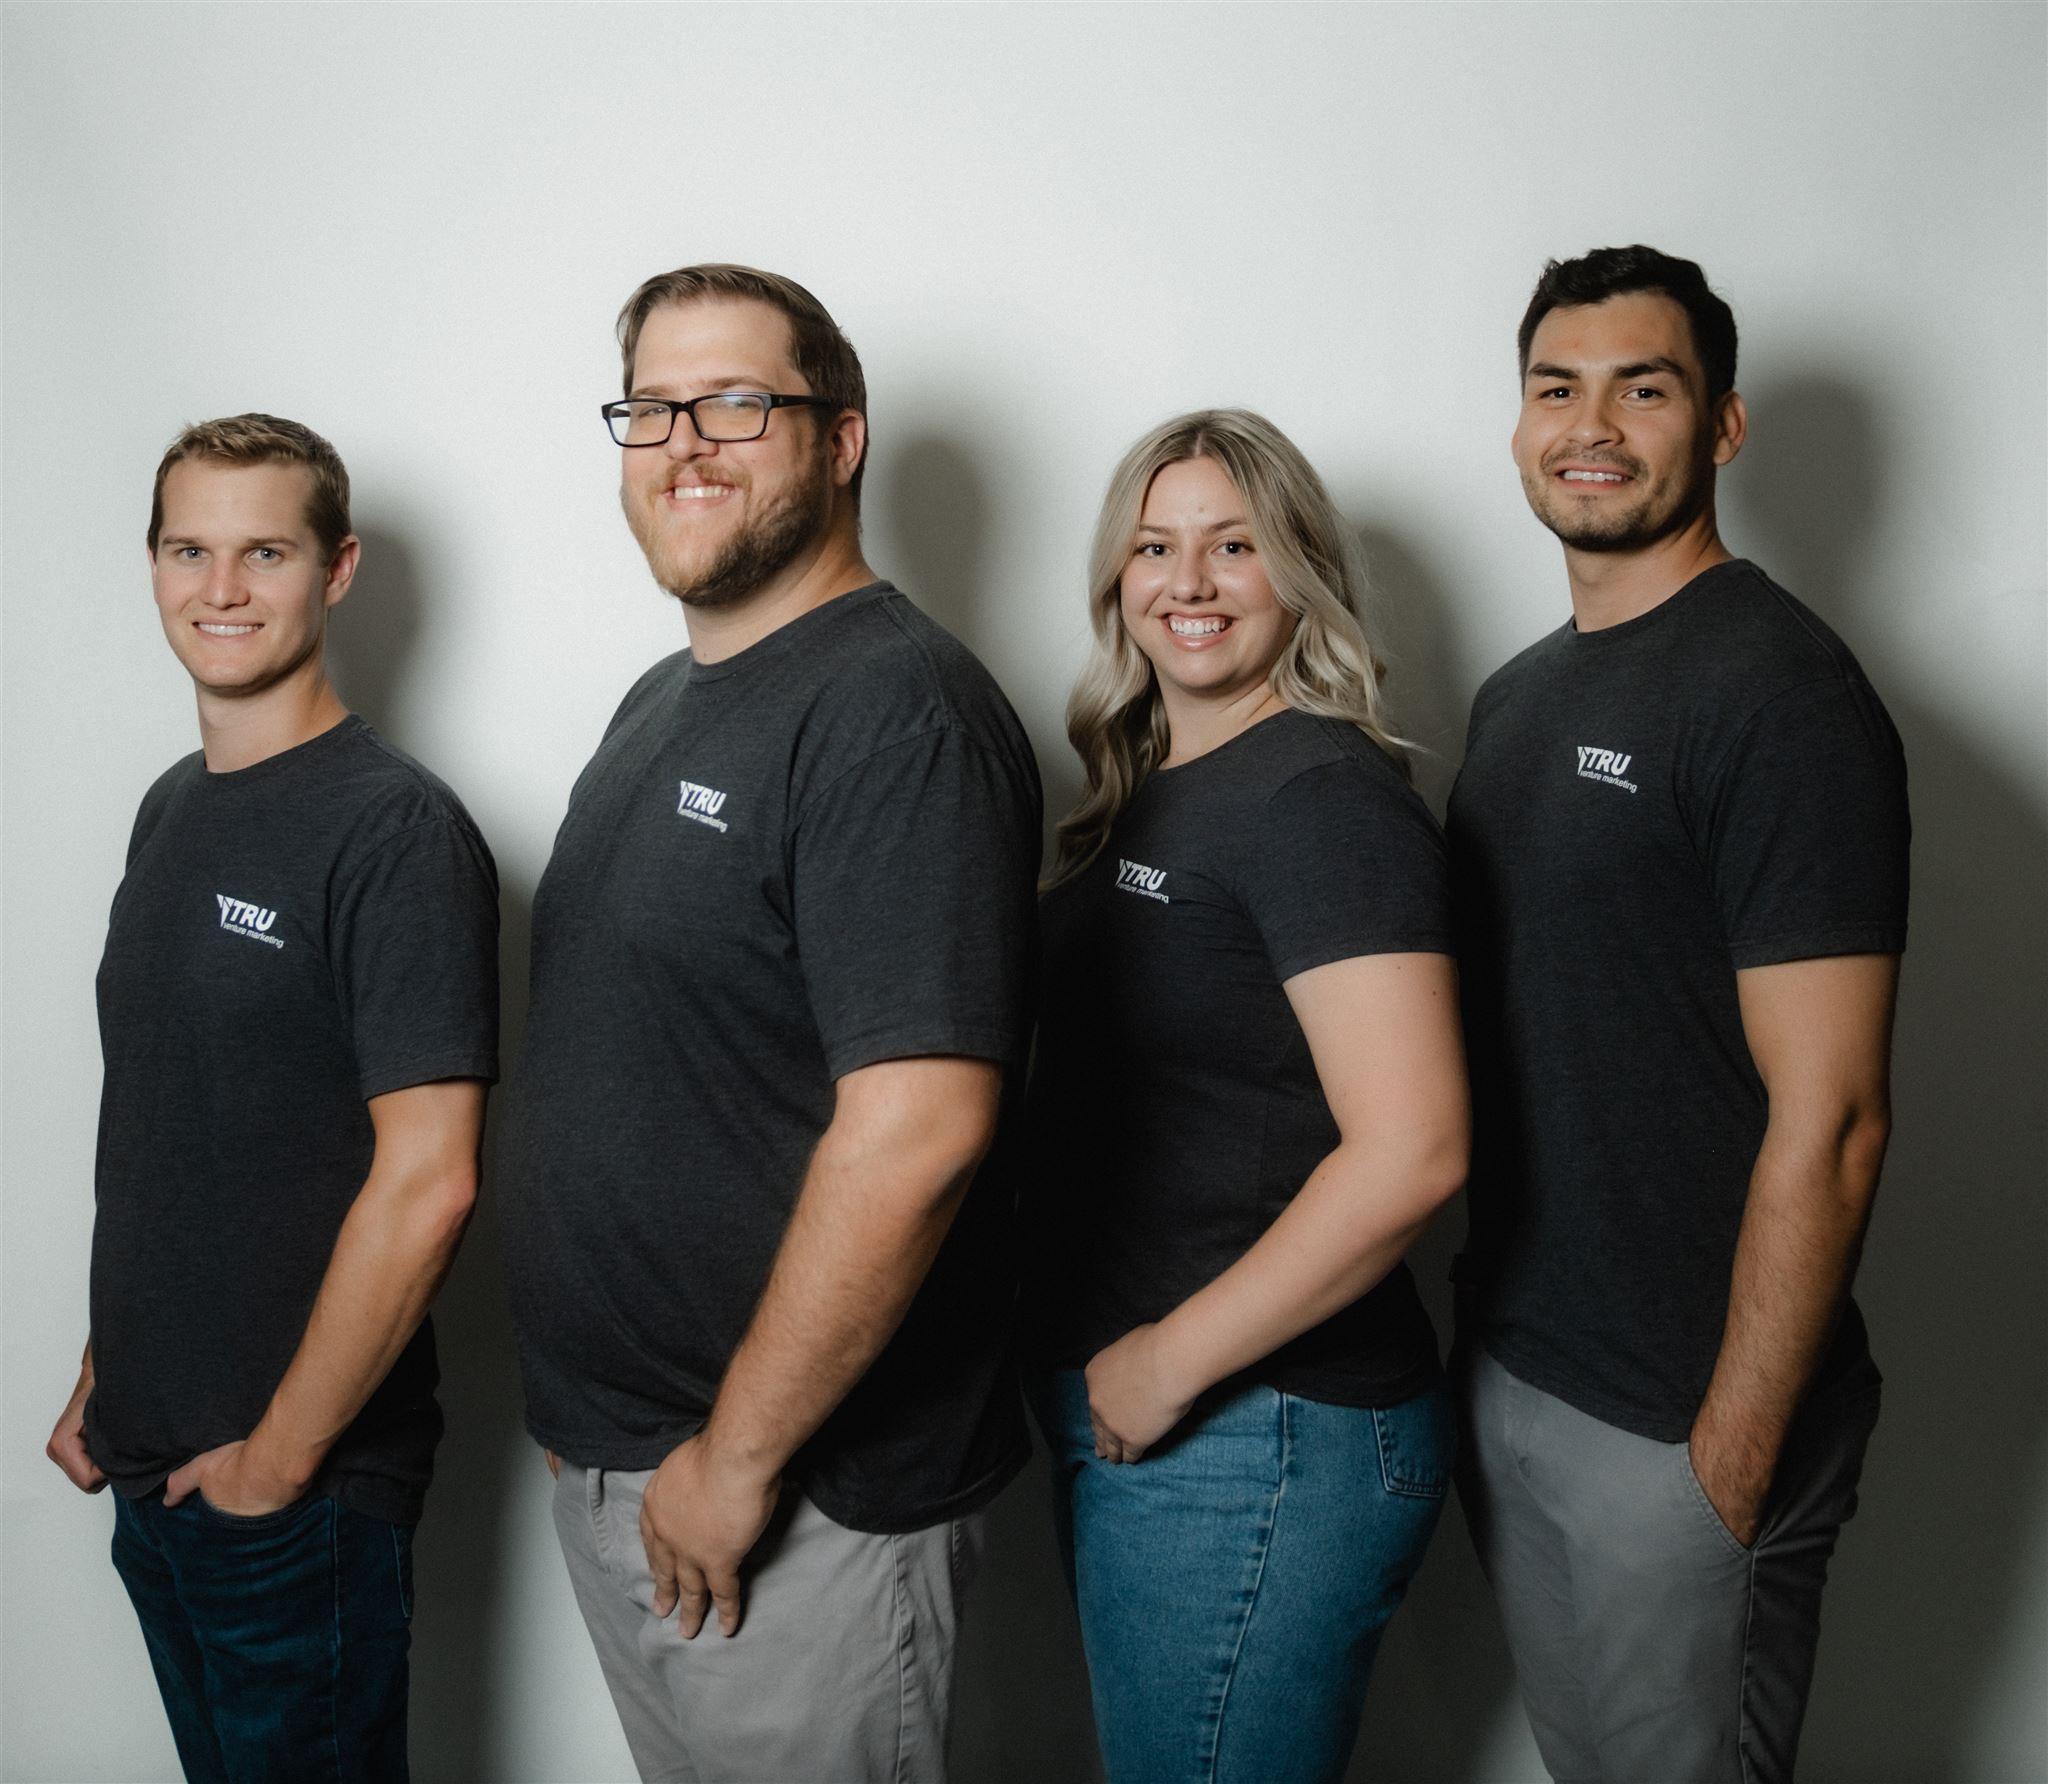 team behind lease engine - smart multifamily apartment marketing agency